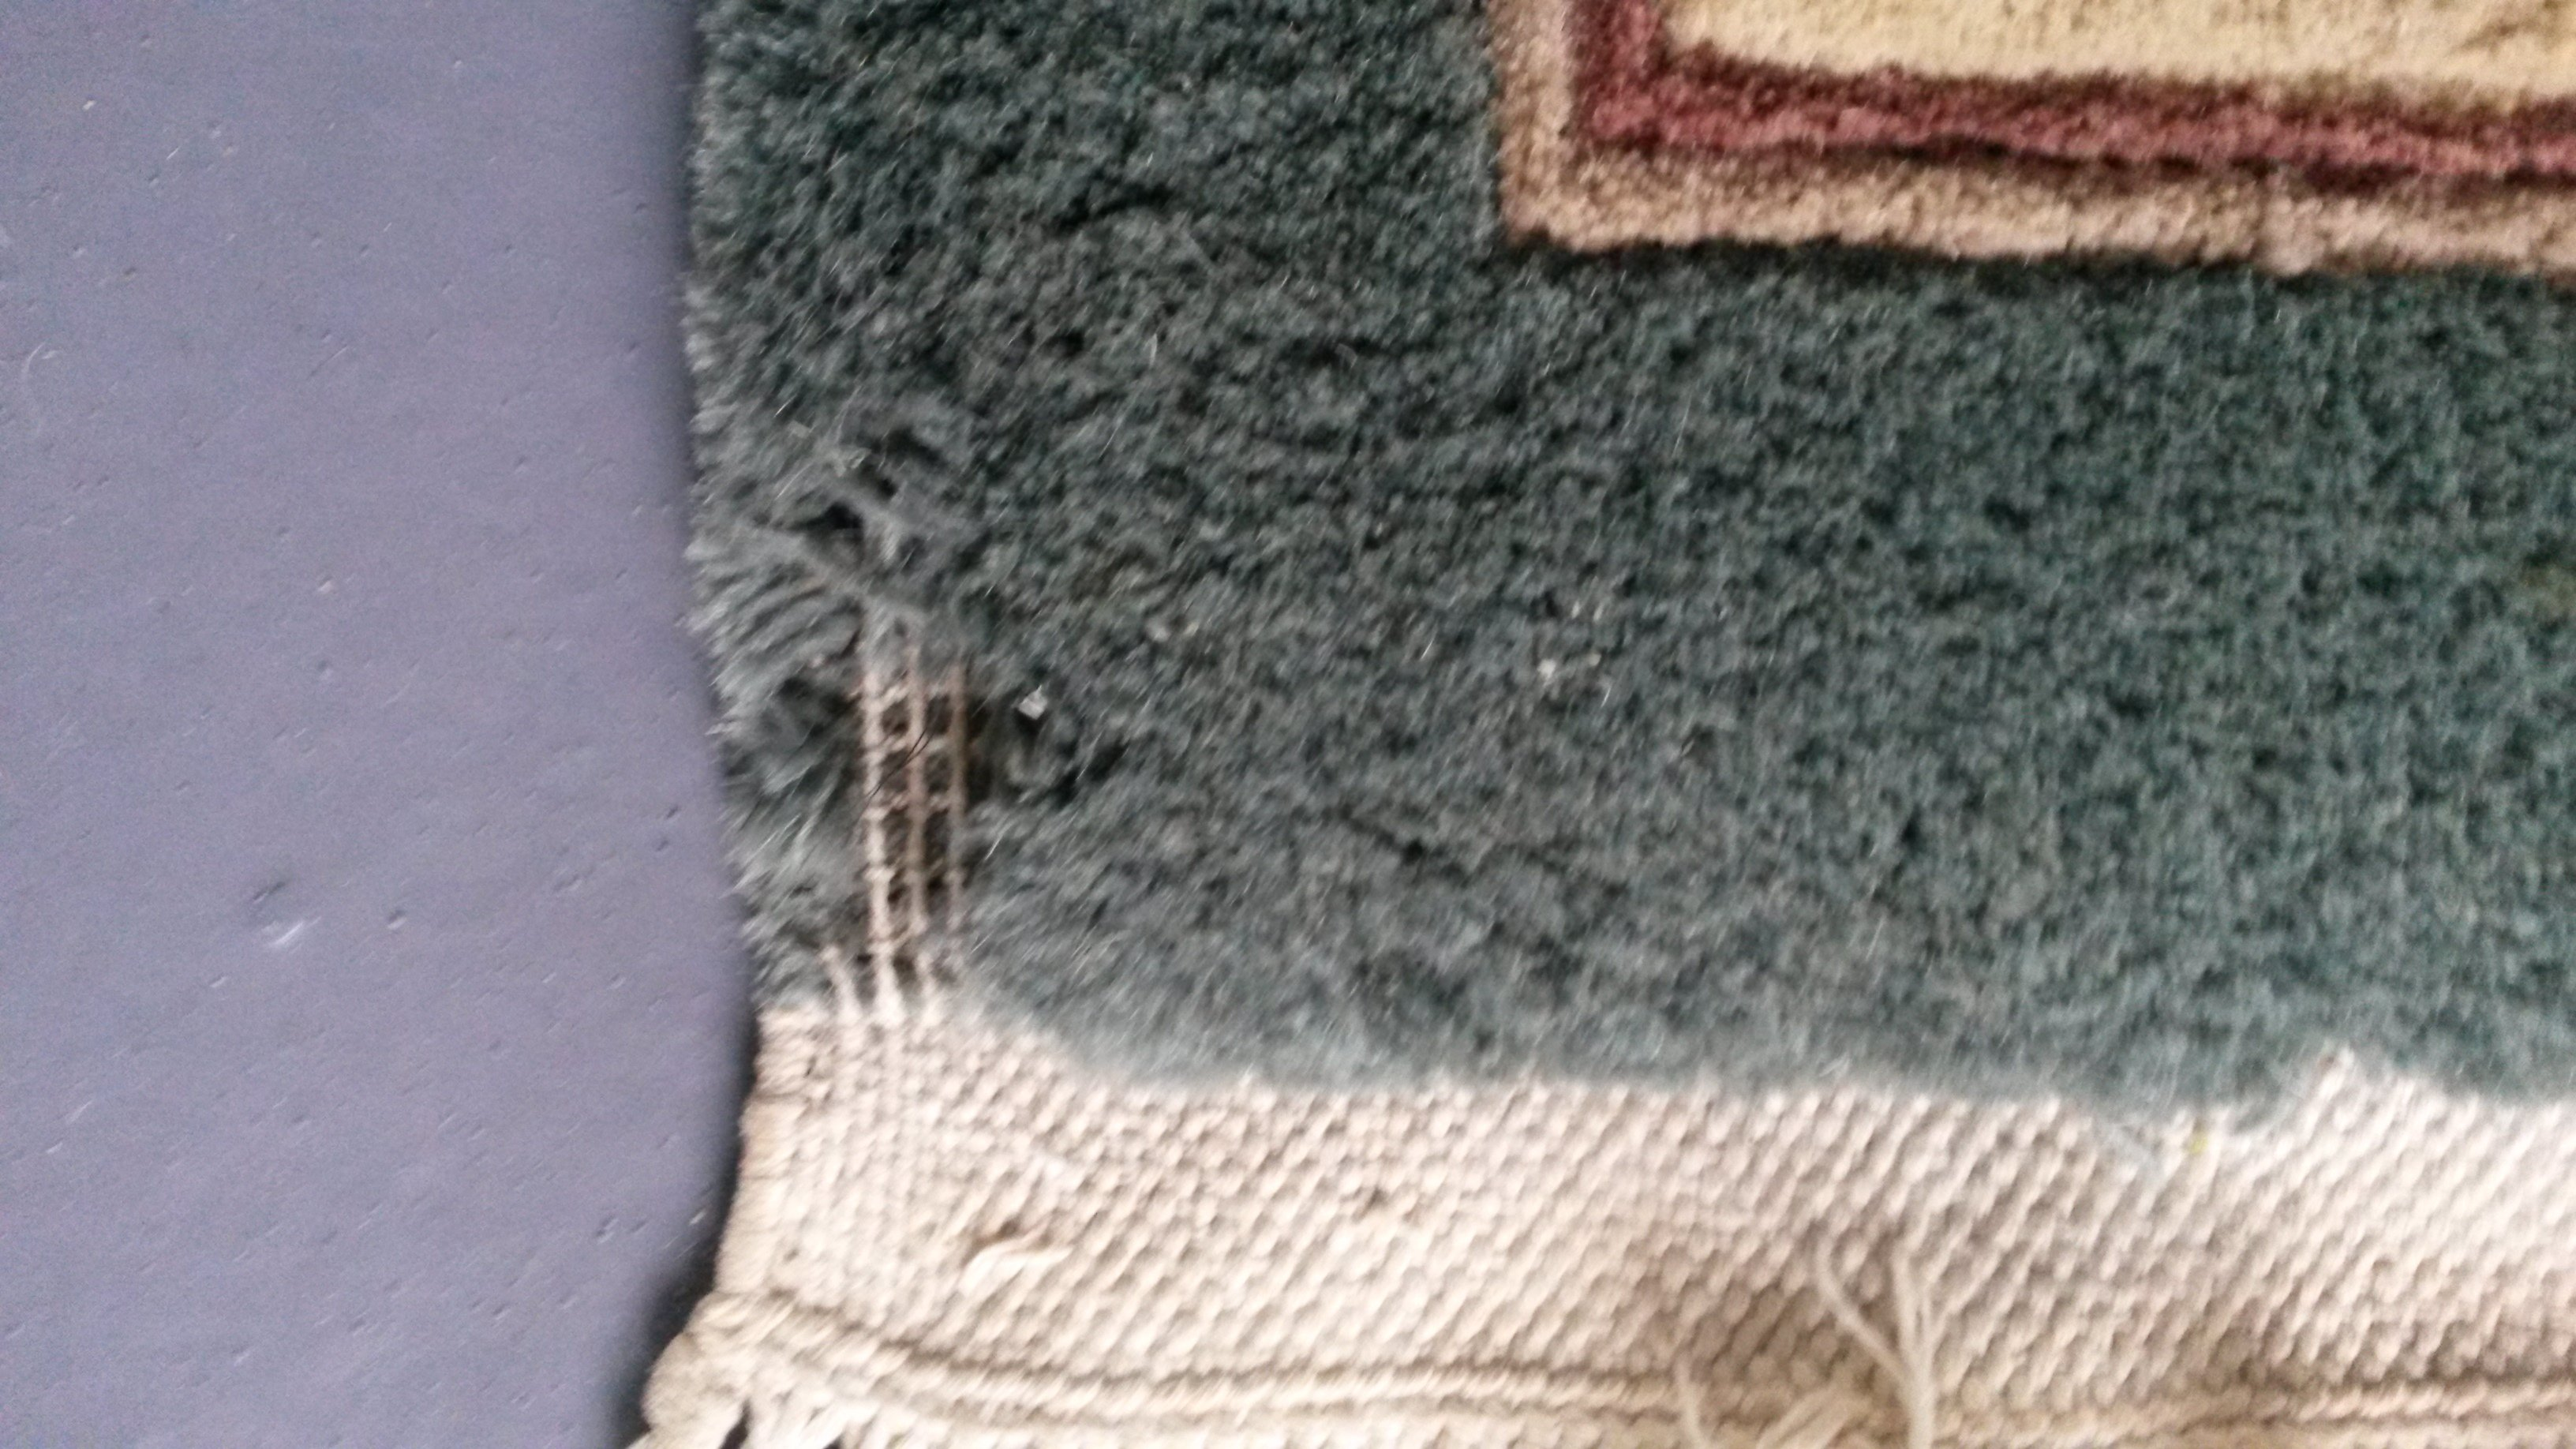 This shows a corner of a Chinese rug that was under a sofa that has been eaten away by succesive moths to the point where you can see the cotton backing